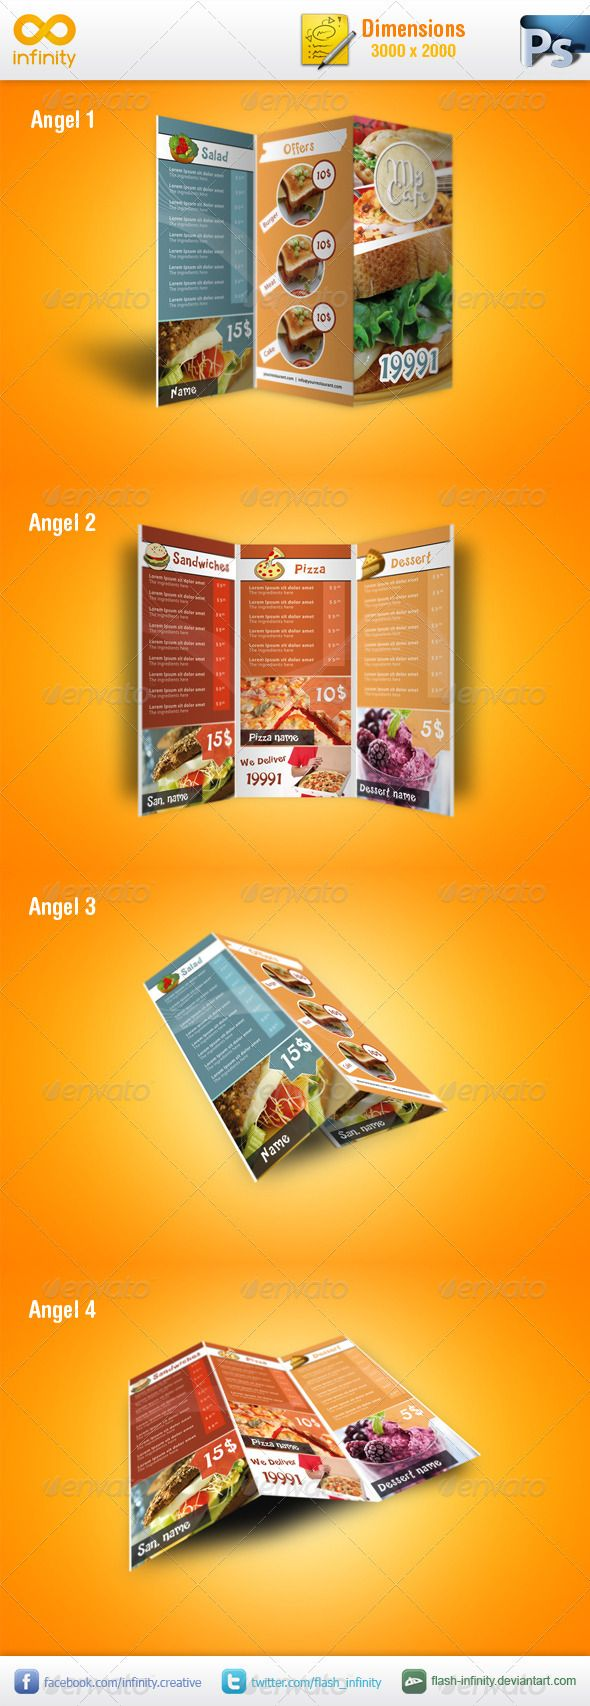 Modern TriFold Mockup v1  #GraphicRiver         Modern TriFold Mockup with 4 views  	 Dimensions: 3000×2000. Easily changing the images, help file included.  	 Thanks to UnicoDesign  as I used his TriFold brochure for the preview.  UnicoDesign's TriFold Brochure can be found here: graphicriver /item/modern-restaurant-menu/393560 	 Don't forget to rate this item.      Created: 14March12 GraphicsFilesIncluded: PhotoshopPSD Layered: Yes MinimumAdobeCSVersion: CS4 PixelDimensions: 3000x2000…